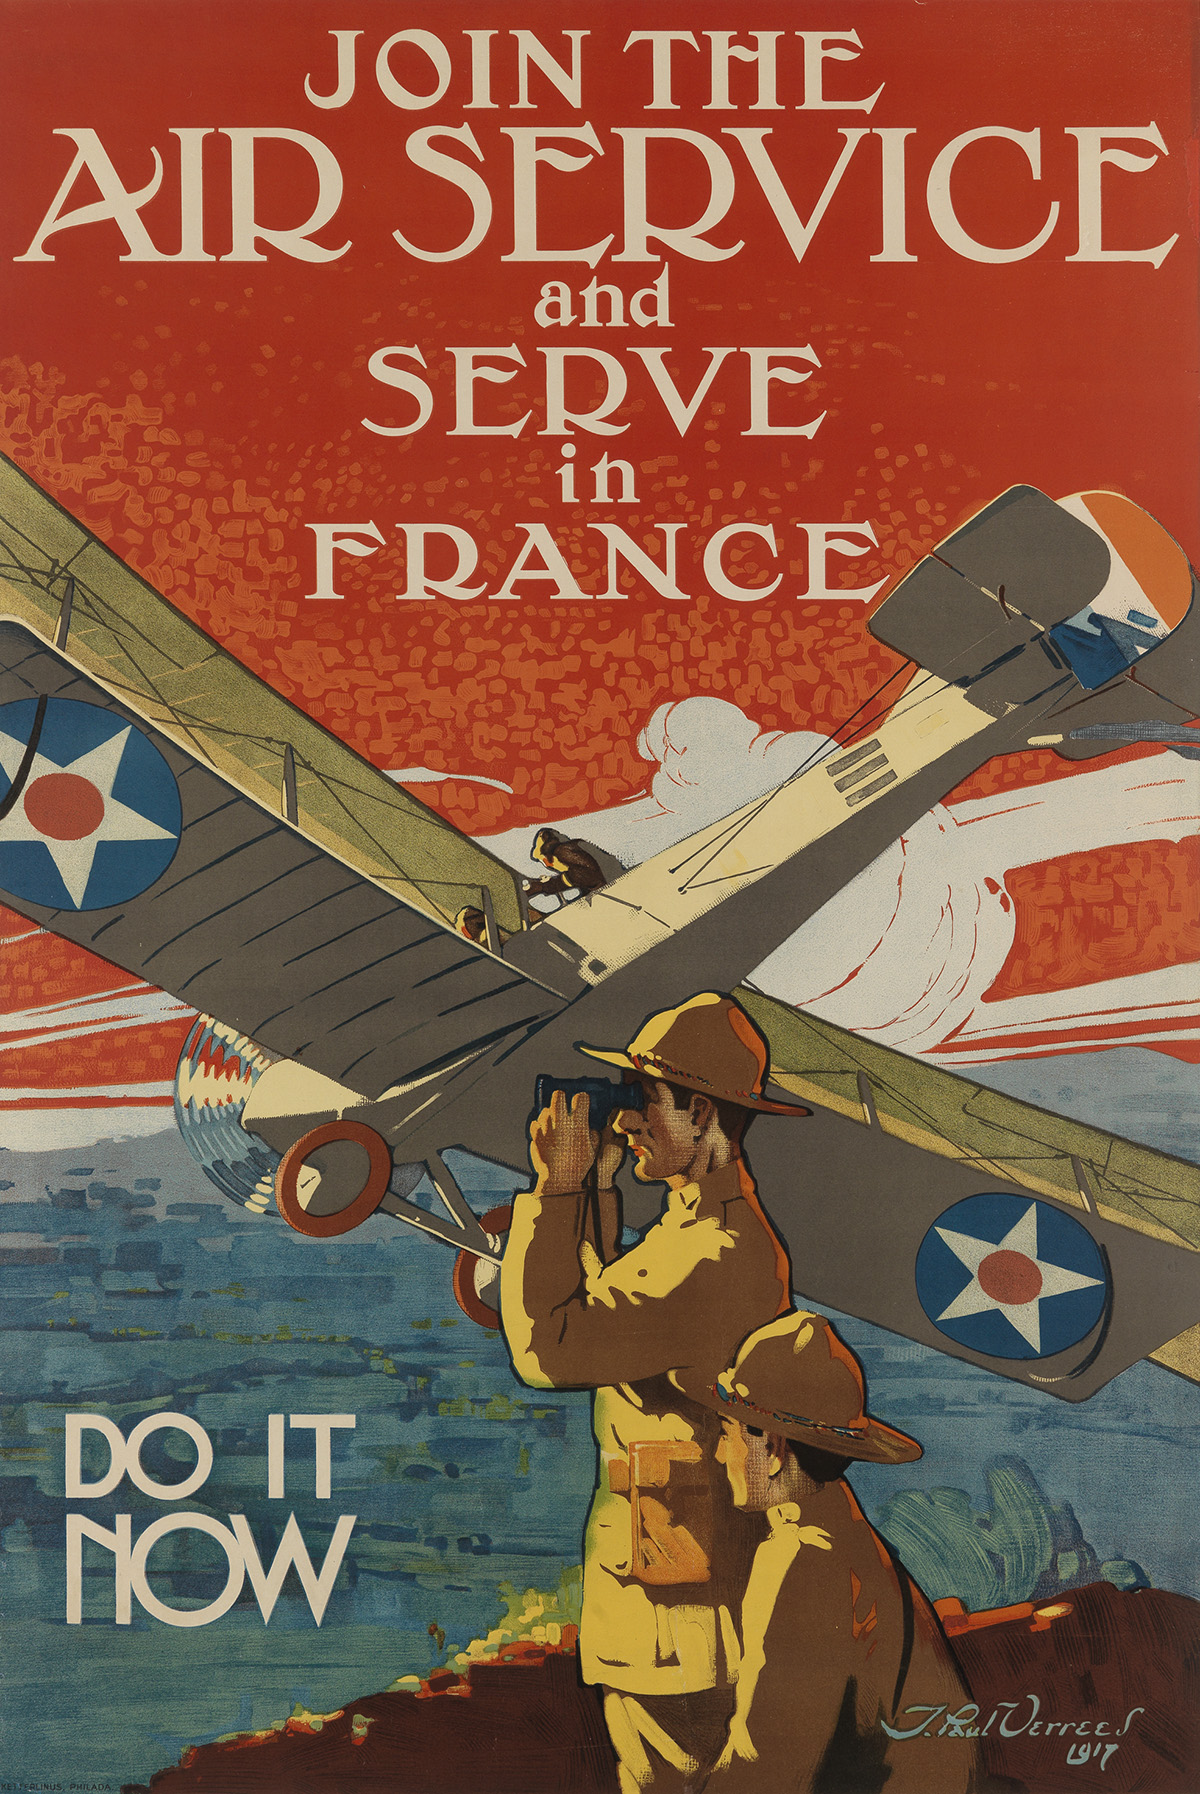 J-PAUL-VERREES-(1889-1942)-JOIN-THE-AIR-SERVICE-AND-SERVE-IN